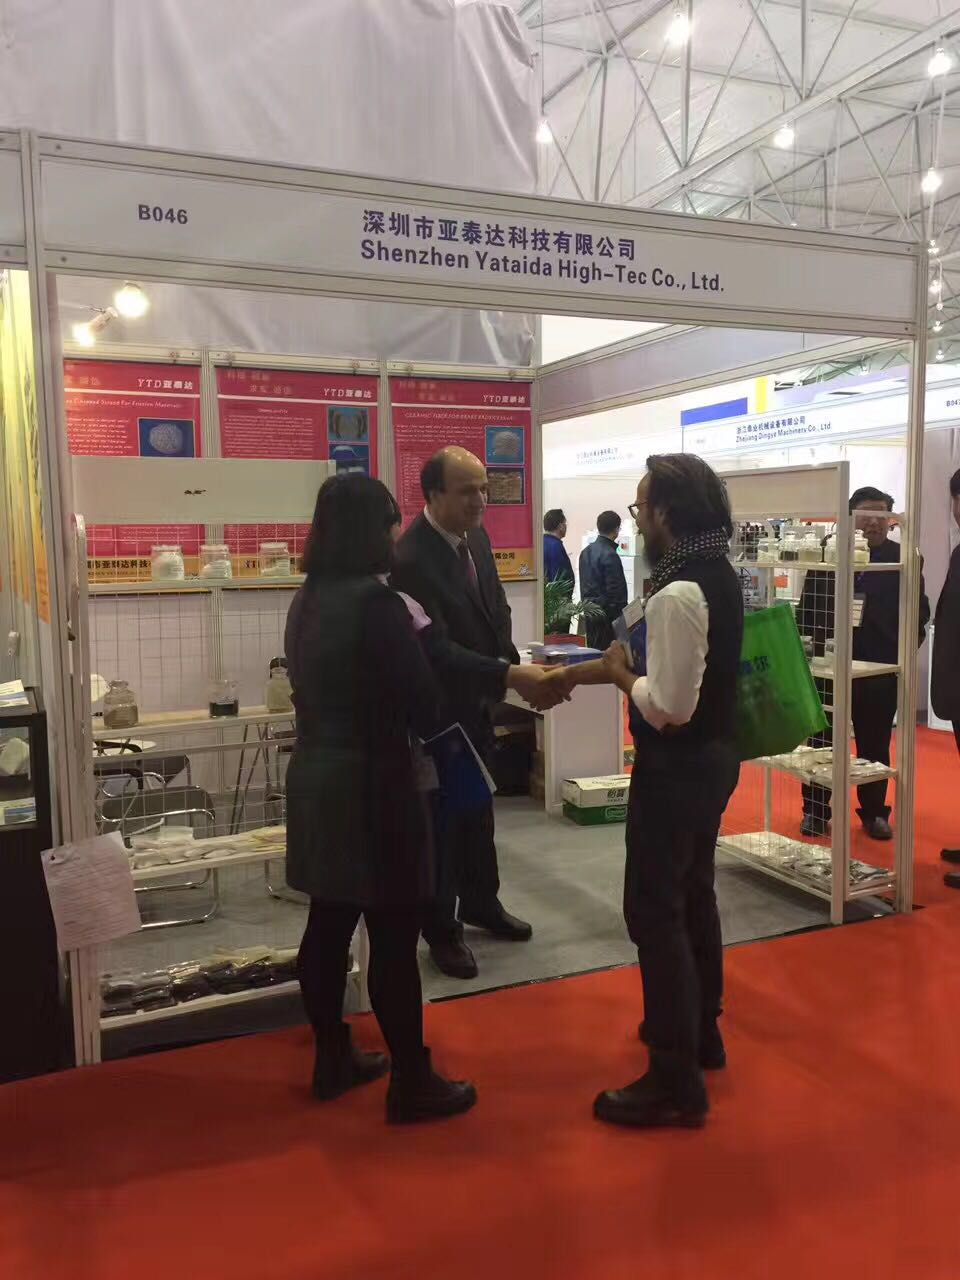 CHENGDU EXHIBITION2